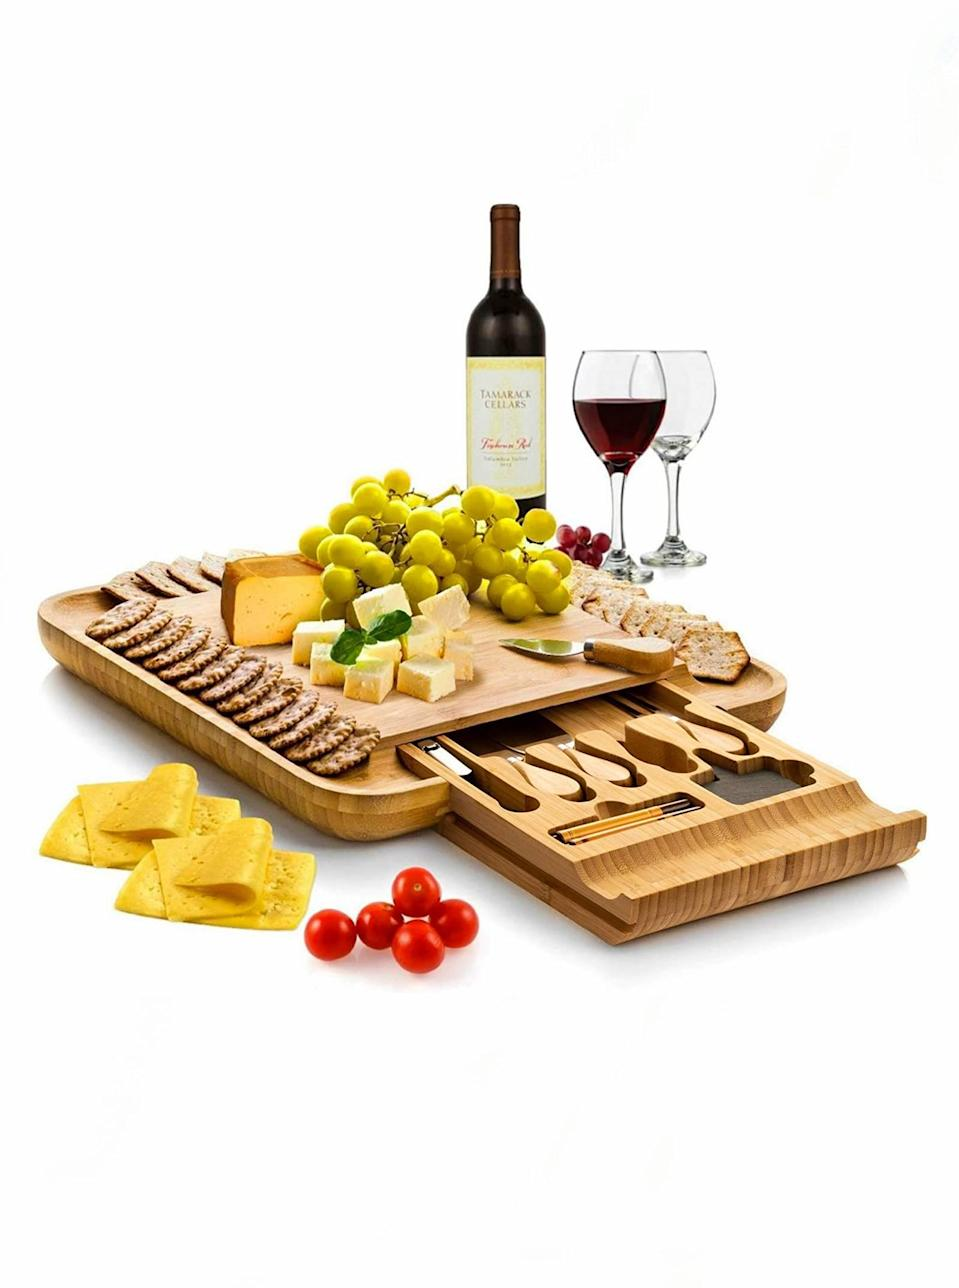 "It it even possible to go wrong when a cheese board is involved? Didn't think so. Gift her this dinner party essential and all of her favorite finger foods, then craft a photo-worthy charcuterie spread together. $50, Amazon. <a href=""https://www.amazon.com/dp/B01DTFF0Y8/"" rel=""nofollow noopener"" target=""_blank"" data-ylk=""slk:Get it now!"" class=""link rapid-noclick-resp"">Get it now!</a>"